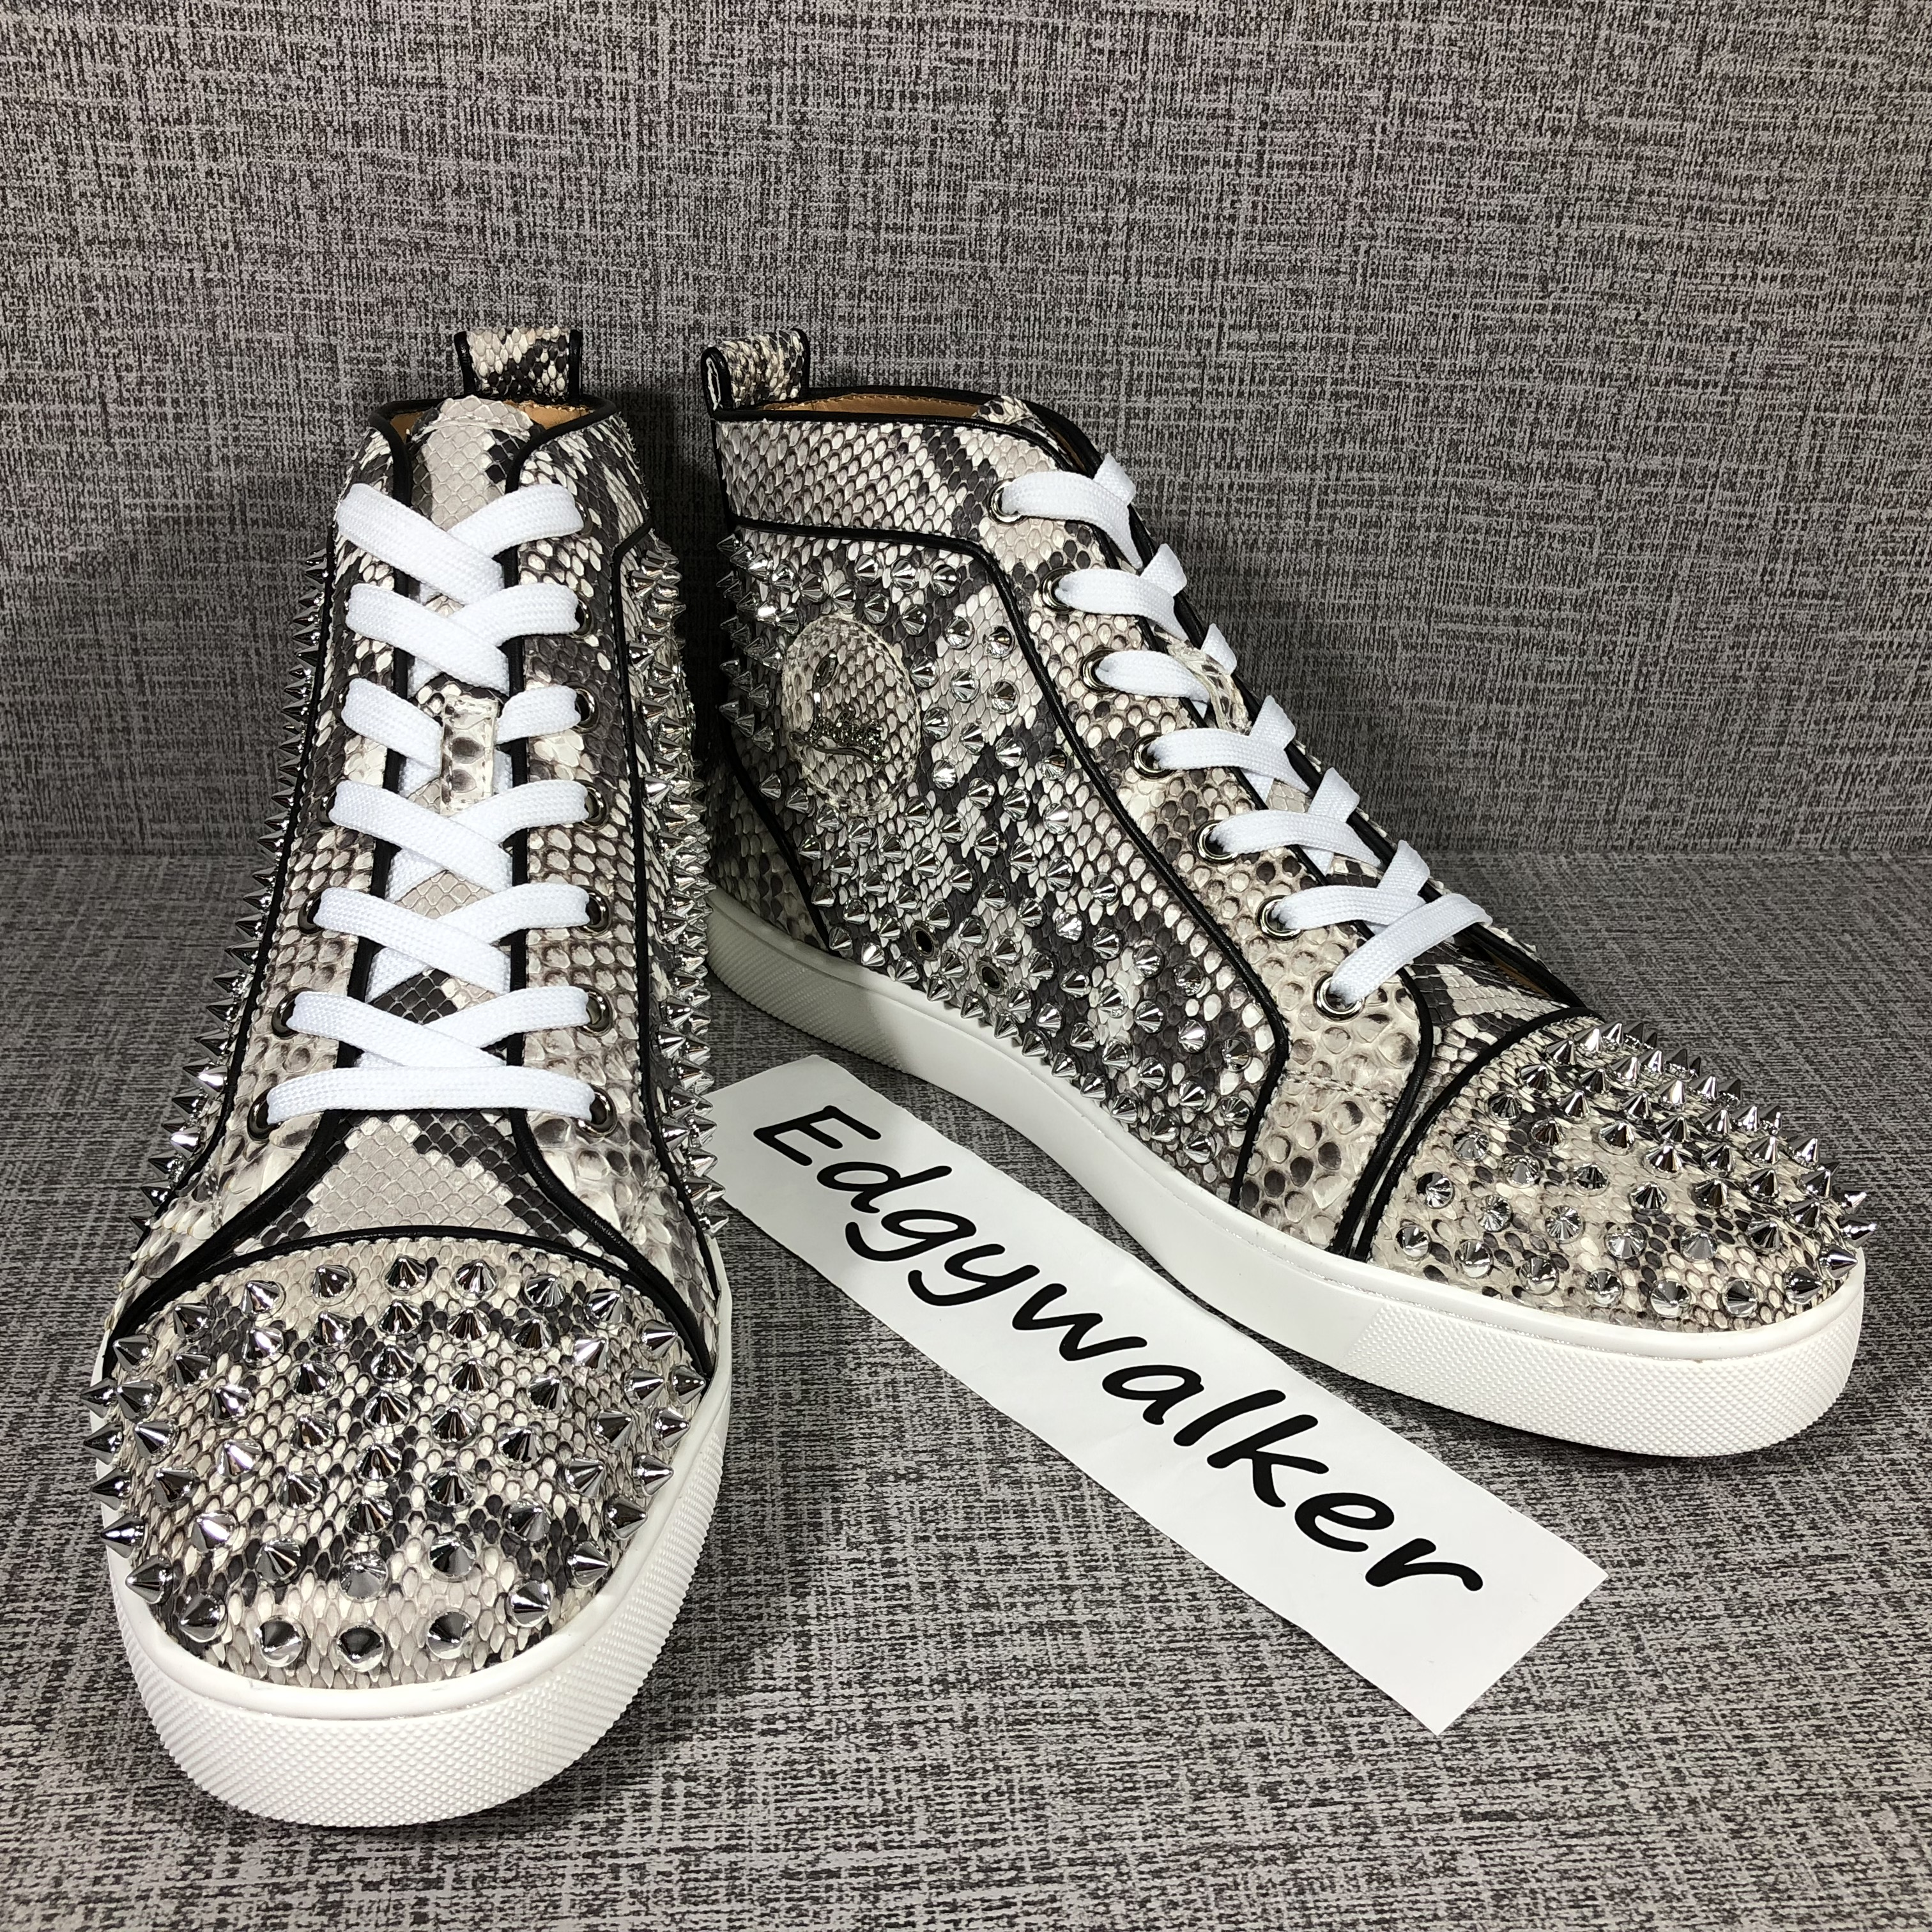 ad418e6b71c CLSKH115 Louboutin White snakeskin silver high-top spikes Item NO  CLSKH115